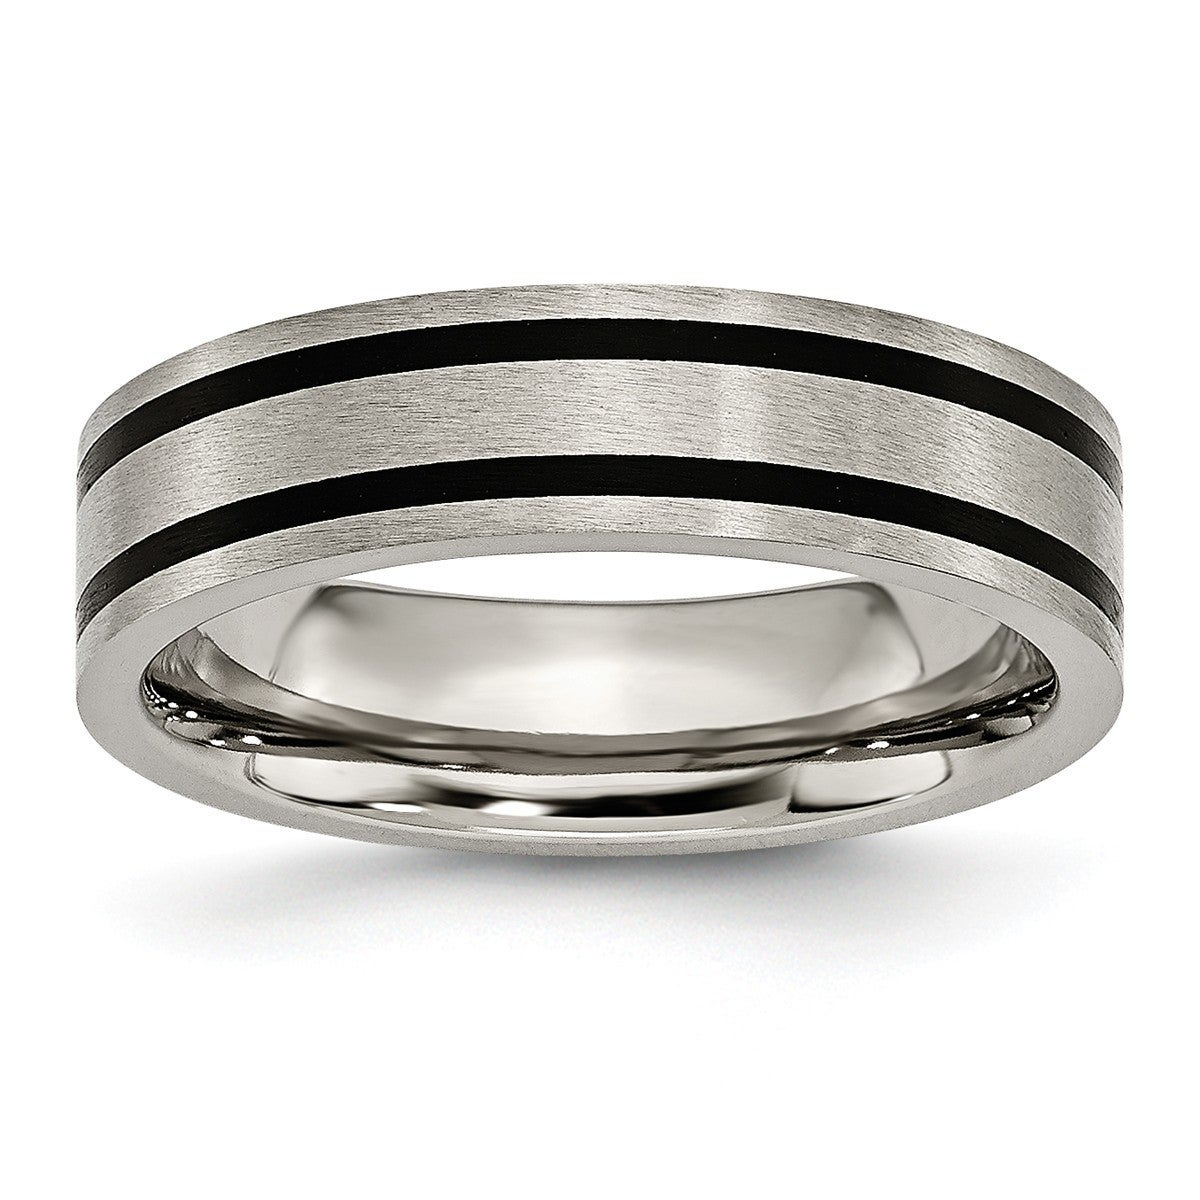 Jewelry Stores Network Mens Titanium Enameled Flat 6mm Satin and Polished Wedding Band Ring